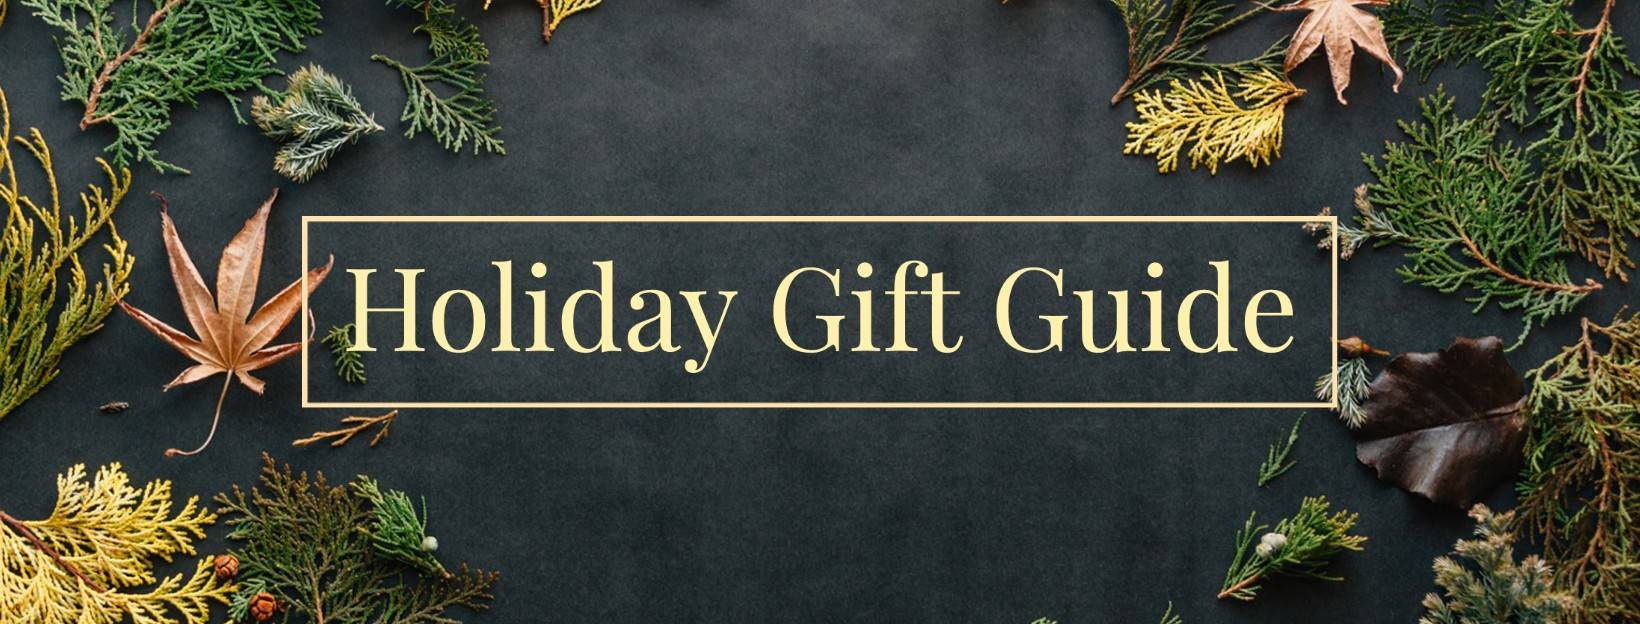 Suzi's Lavender Holiday Gift Guide